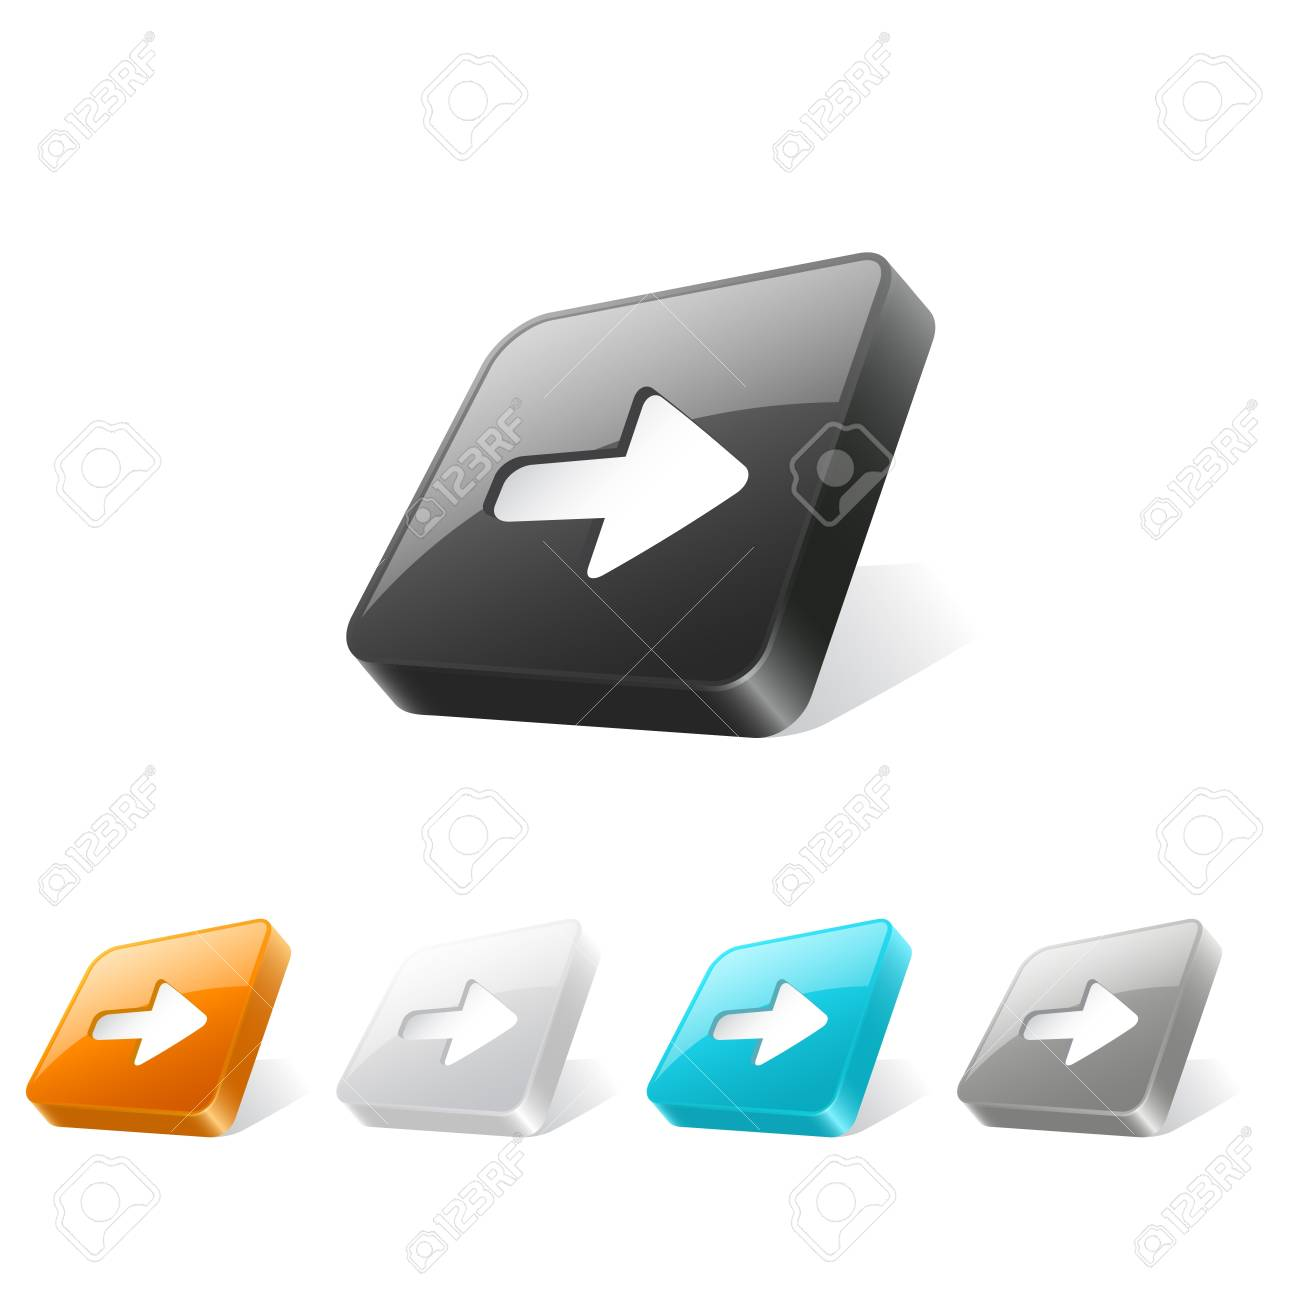 Set of arrow icons on 3d square buttons in different colors Stock Vector - 20709255